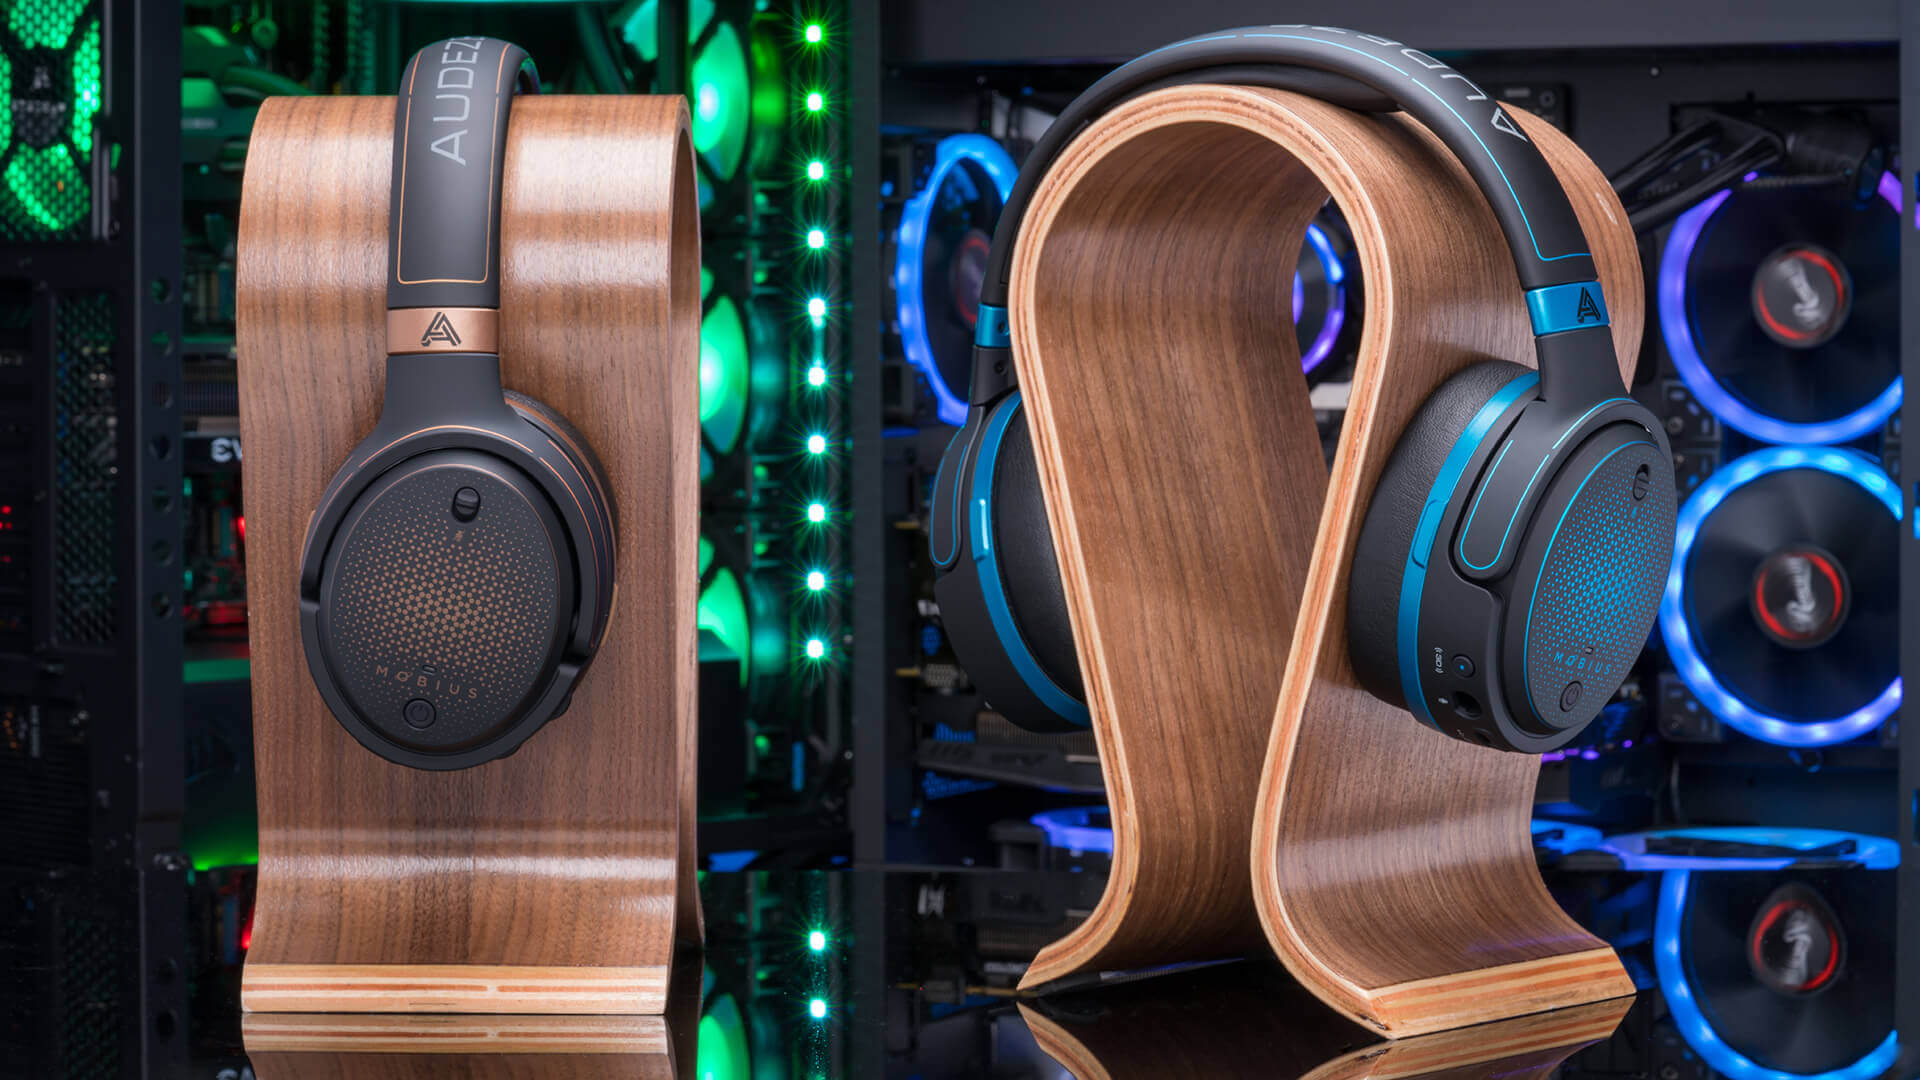 The Audeze Mobius gaming headphones